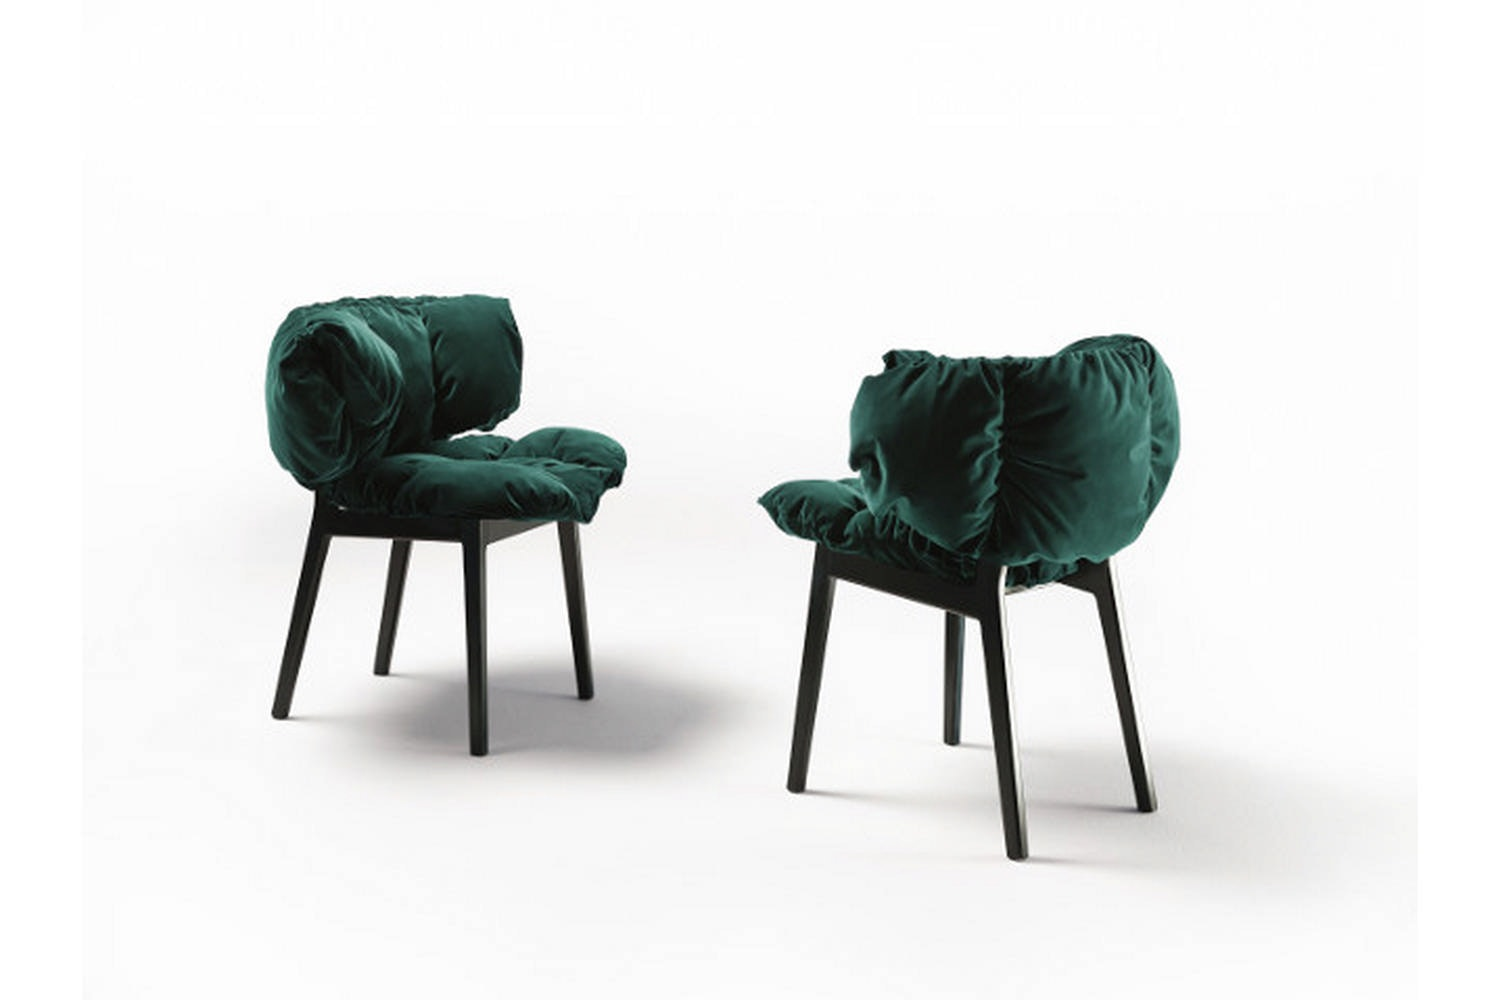 Blue Velvet Chair by F. e H. Campana for Edra